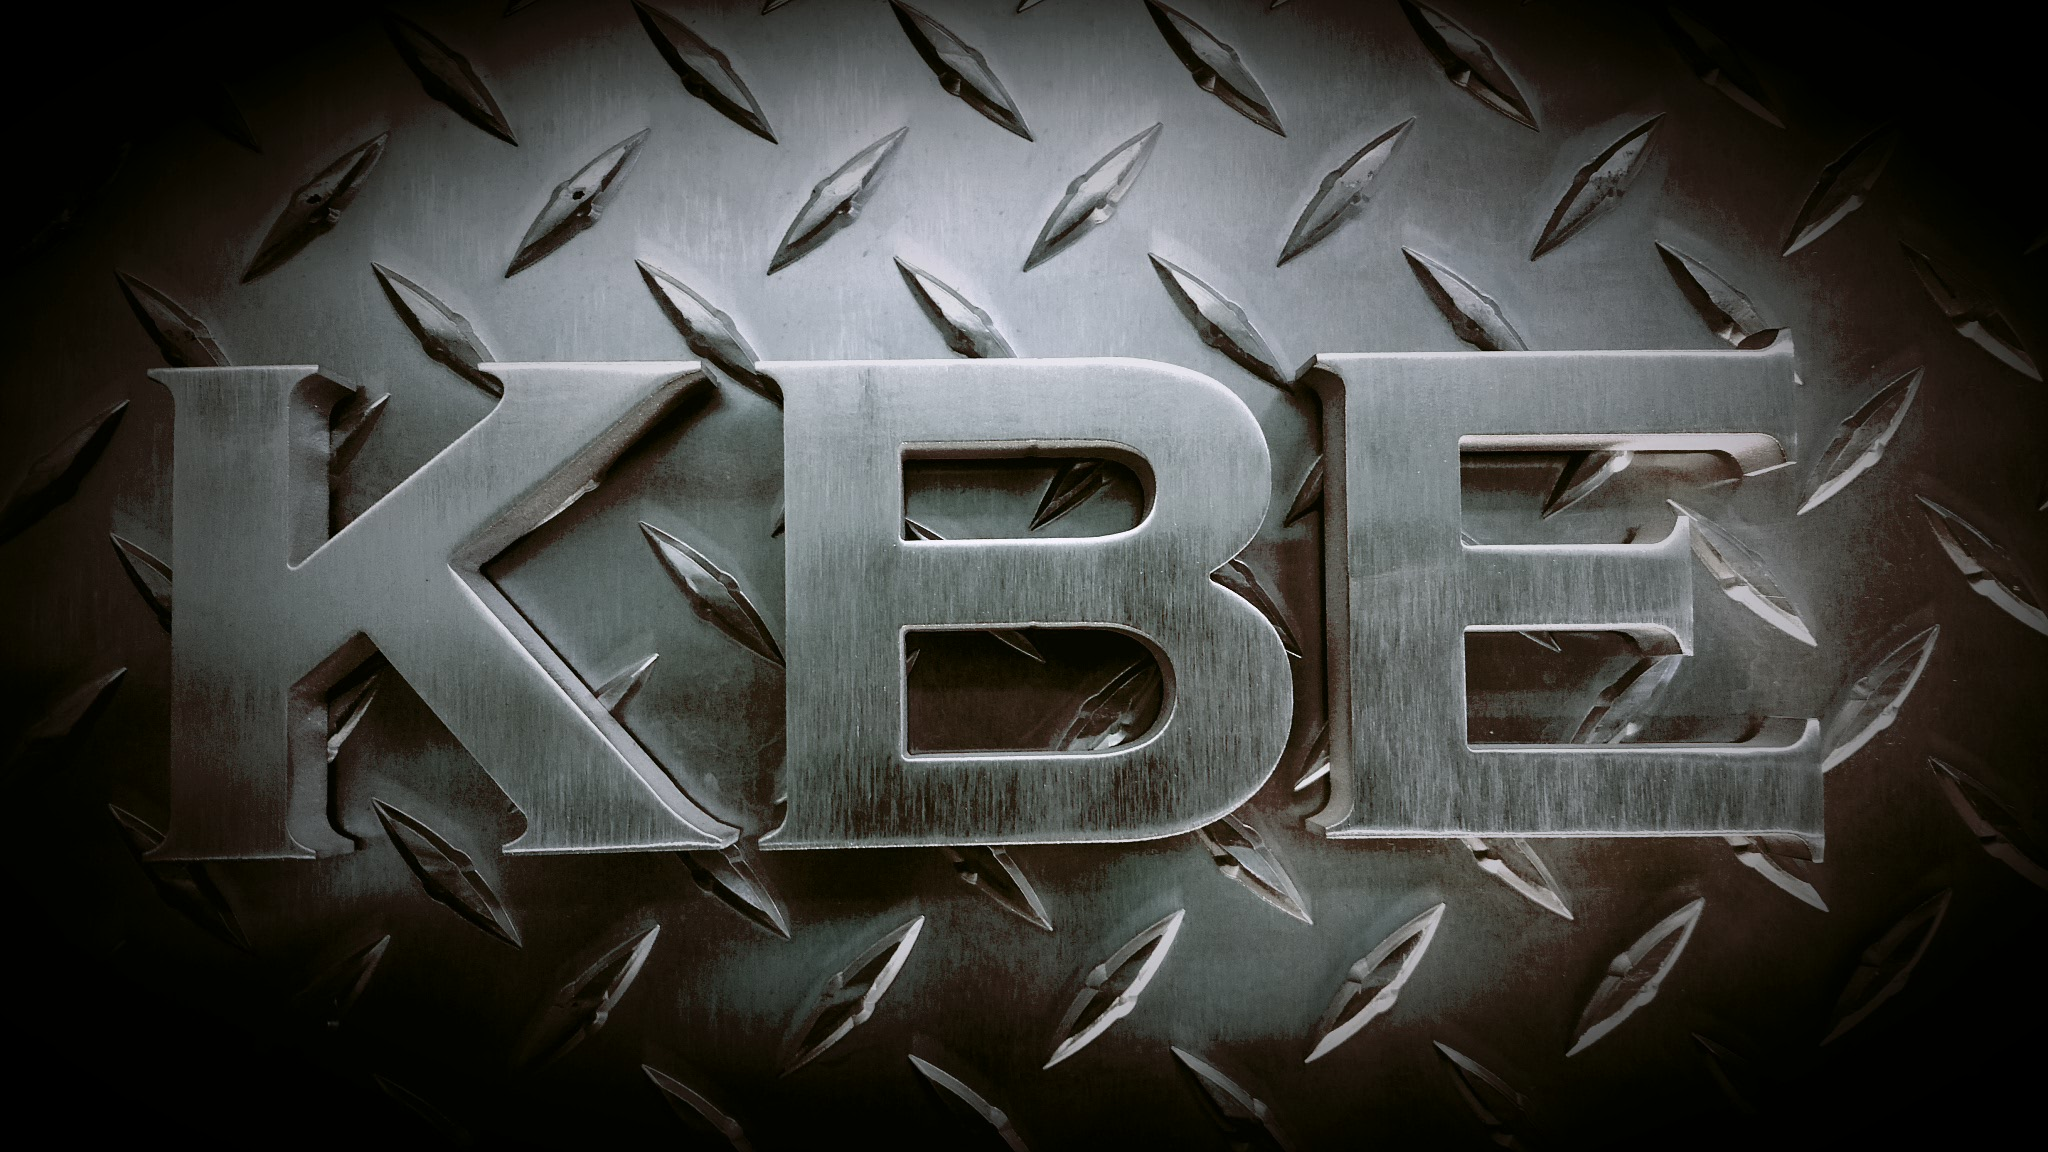 KBE Precision Products